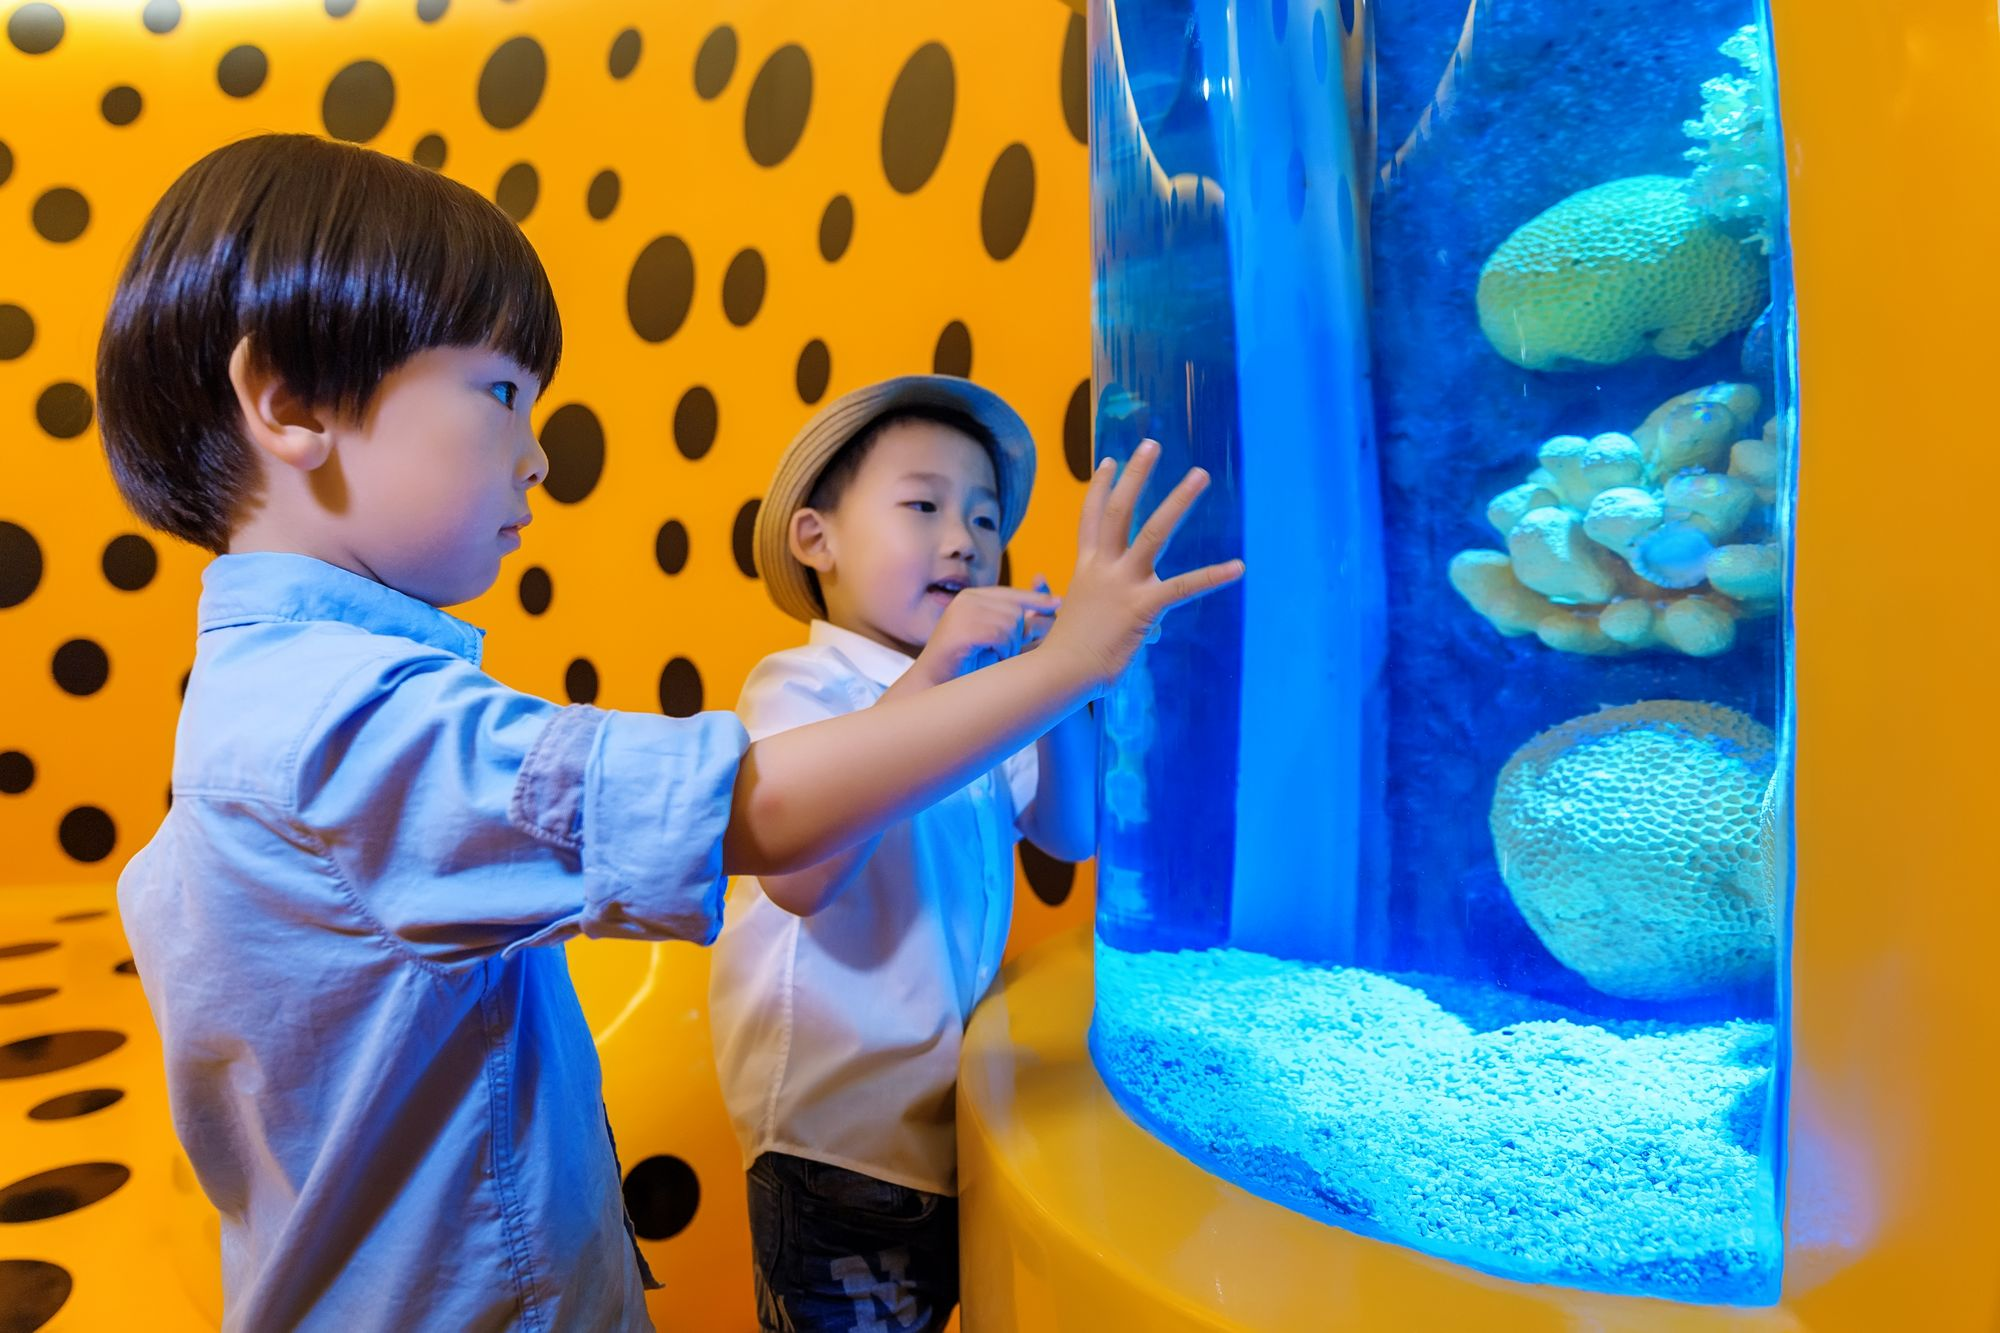 ... Of Living Art Aquarium Is Inspired From Influential Japanese Artist  Yayoi Kusama, The Aquarium Sees Her Ironic Polka Dots Painted From Ceiling  To Floor, ...